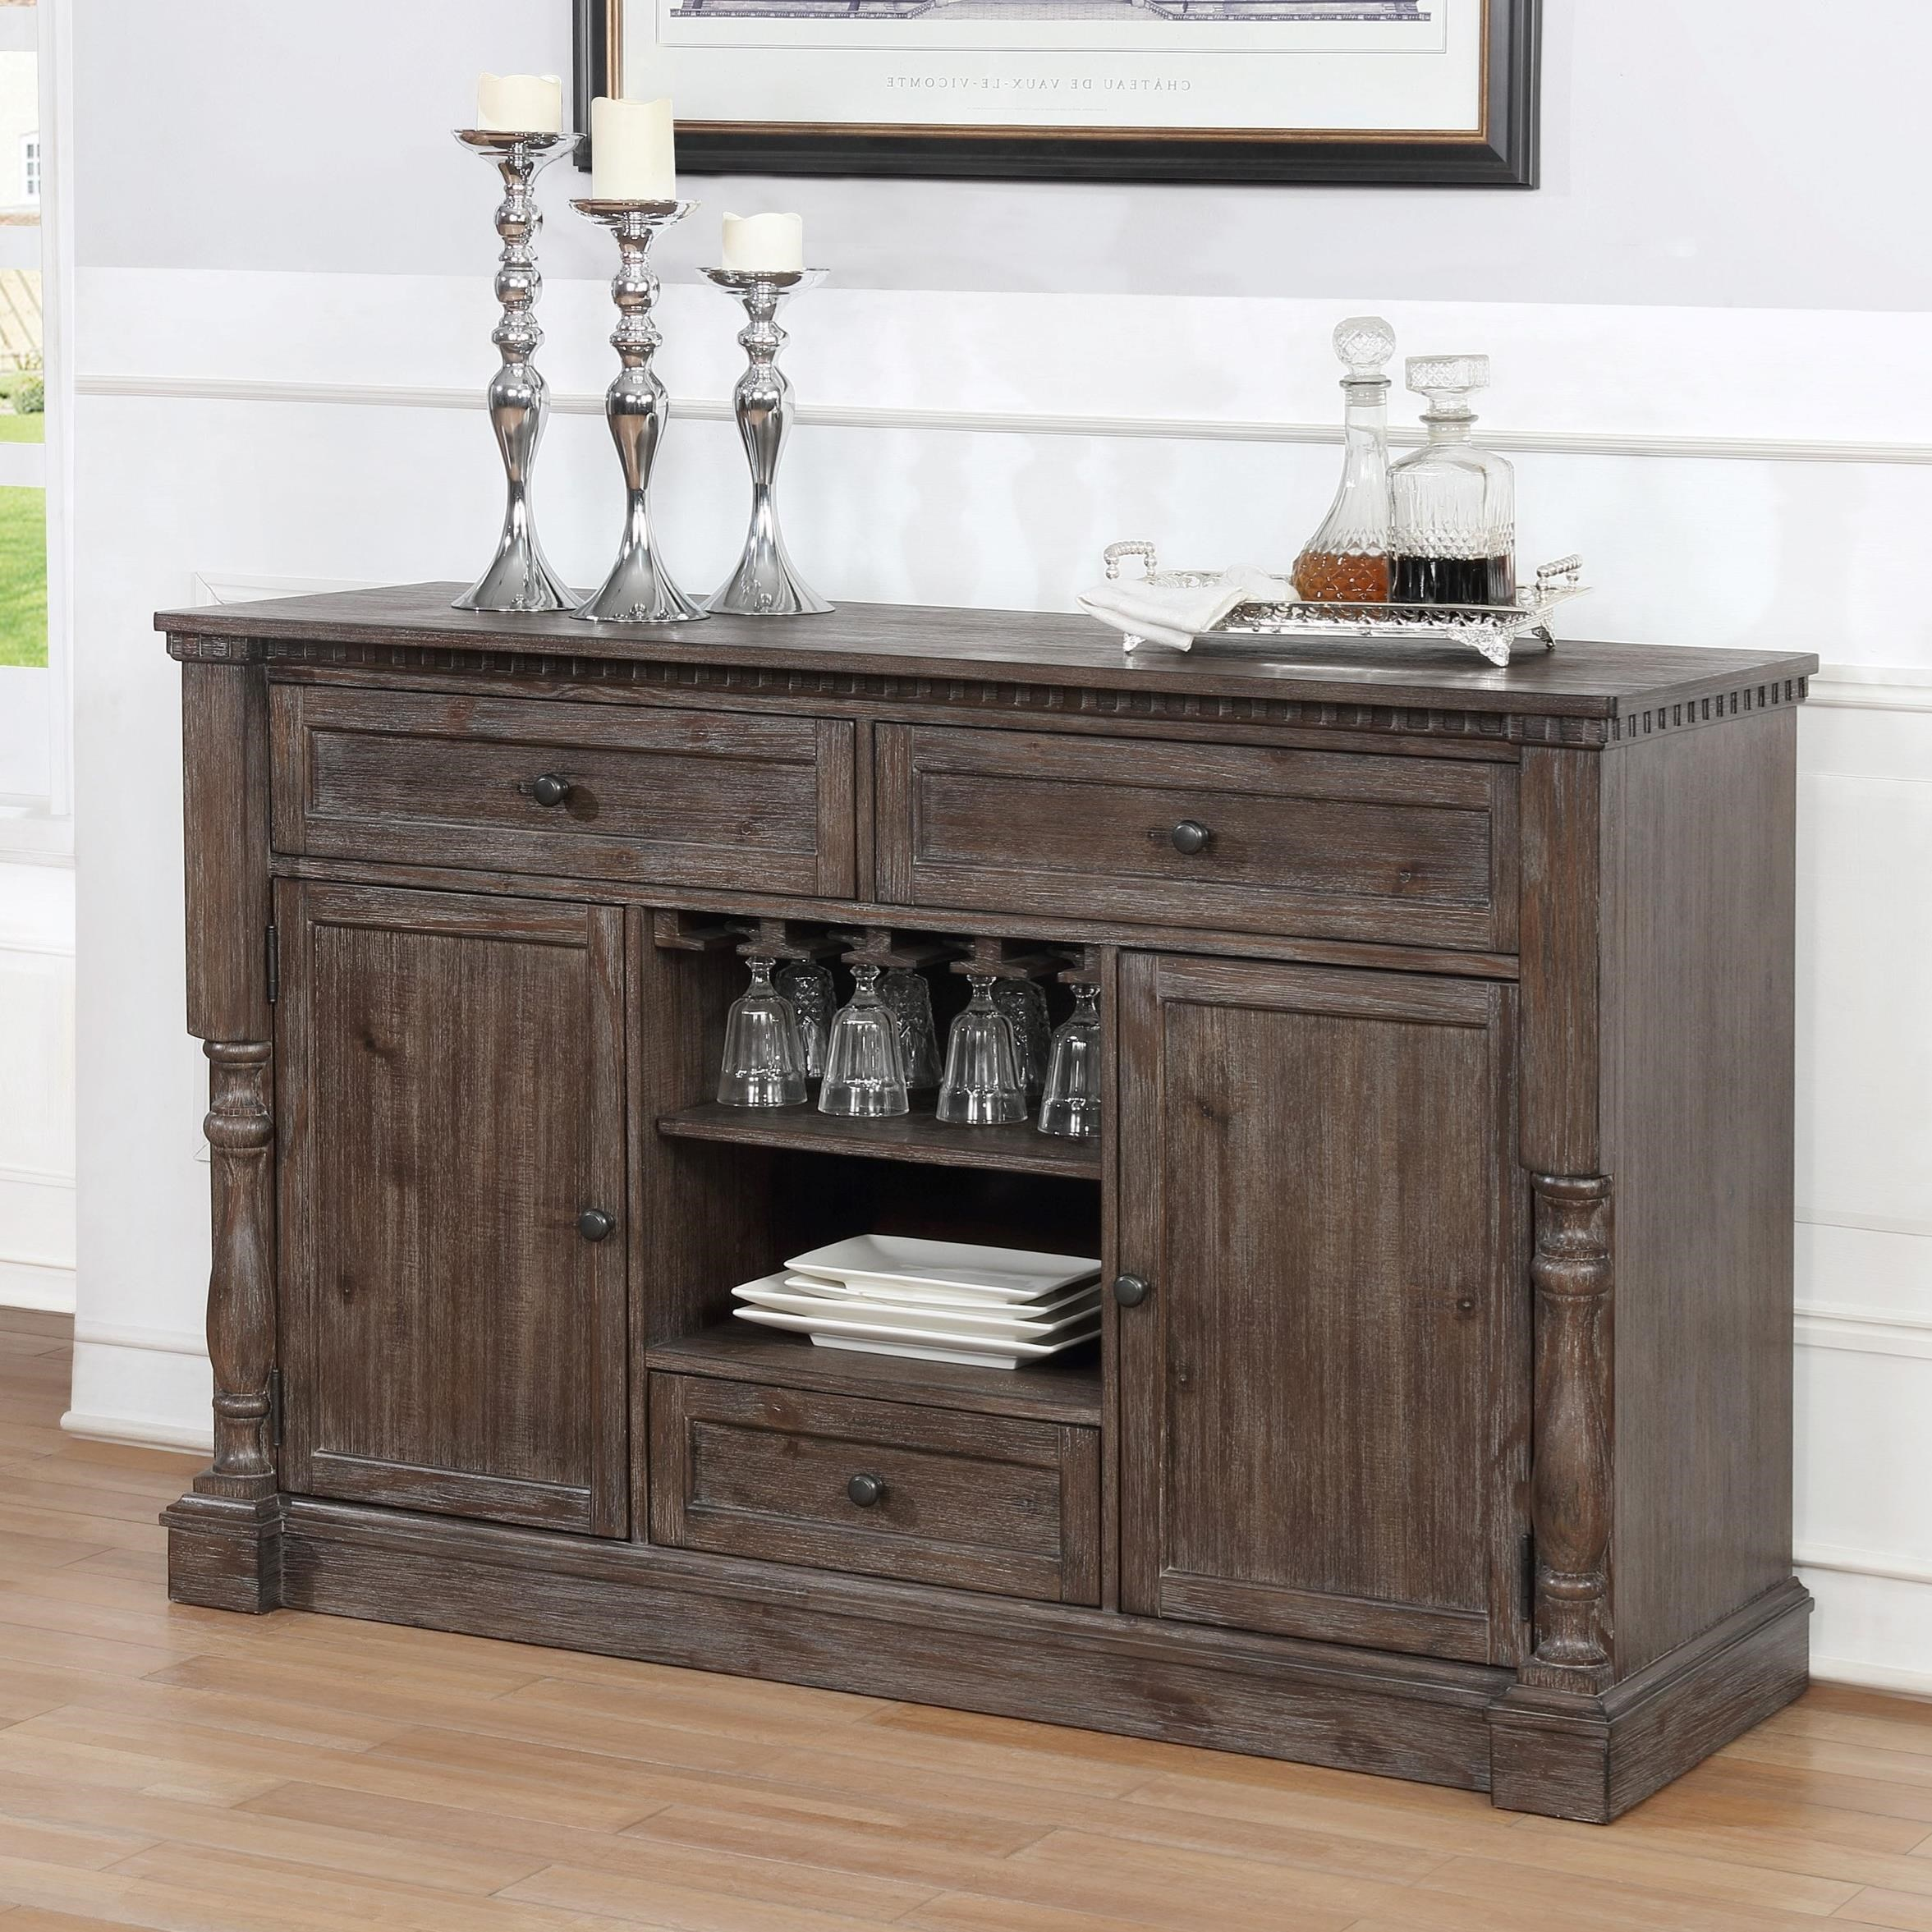 Regent Dining Room Server by Crown Mark at Wilcox Furniture